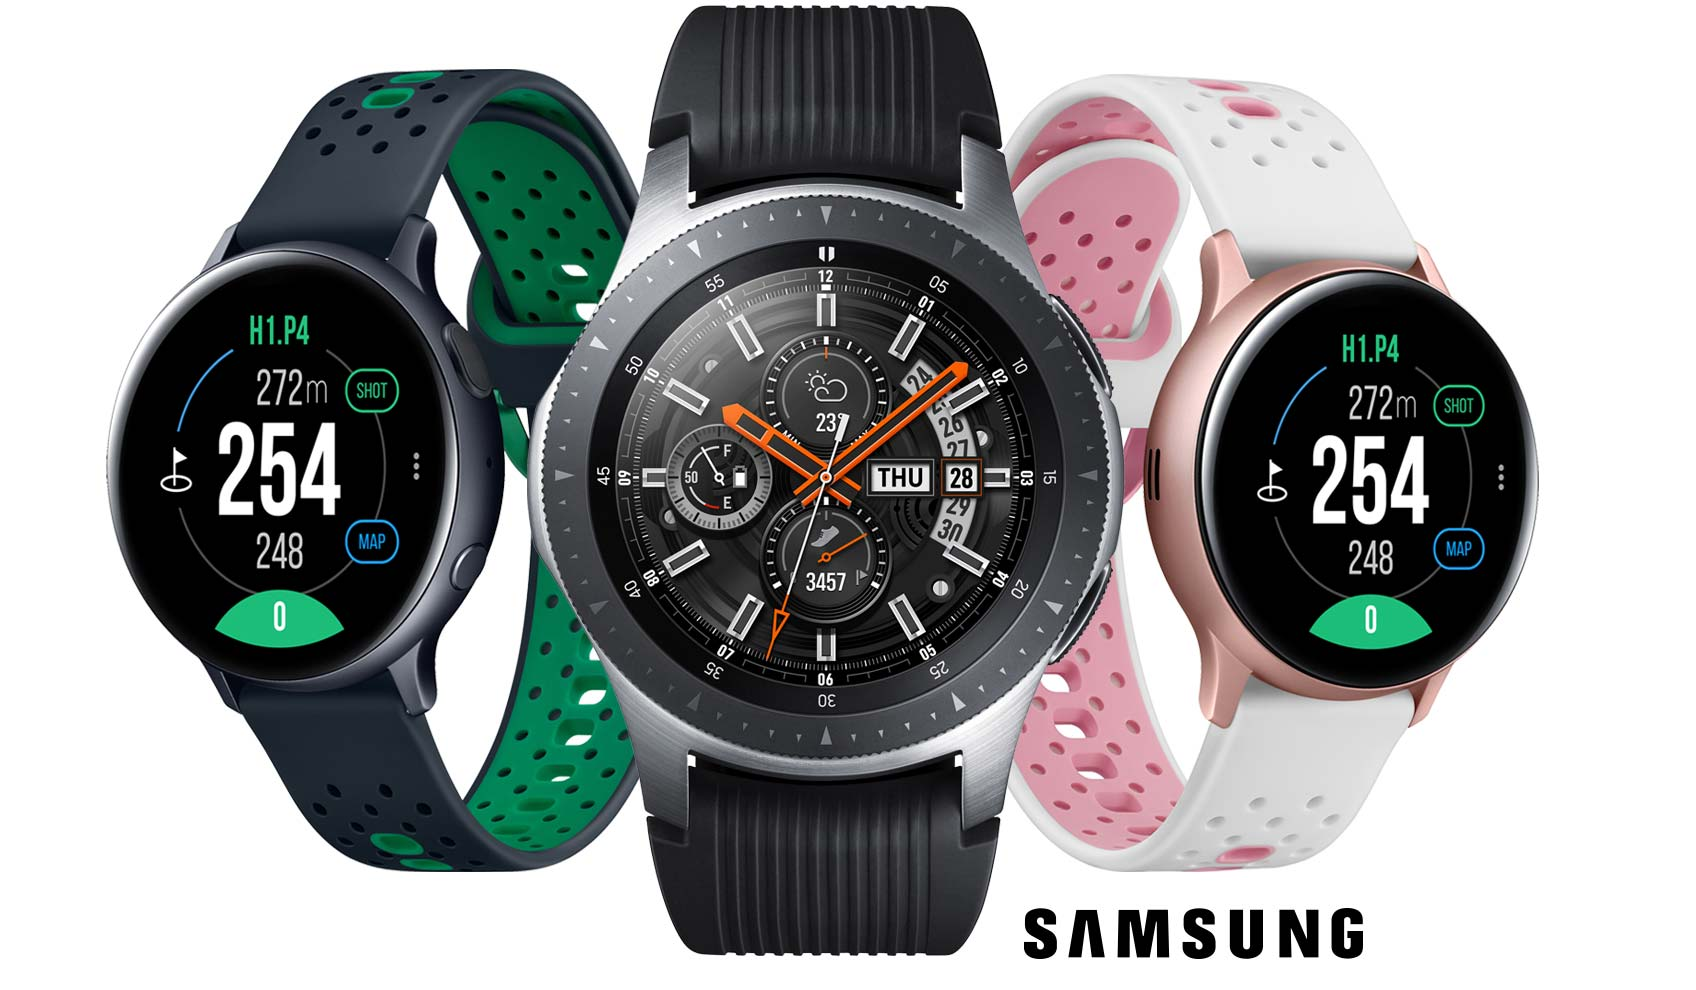 GLOBAL SPORTS DISTRIBUTOR SECOND CHANCE PARTNERS WITH SAMSUNG TO LAUNCH SMART GOLF WATCHES IN EUROPE: